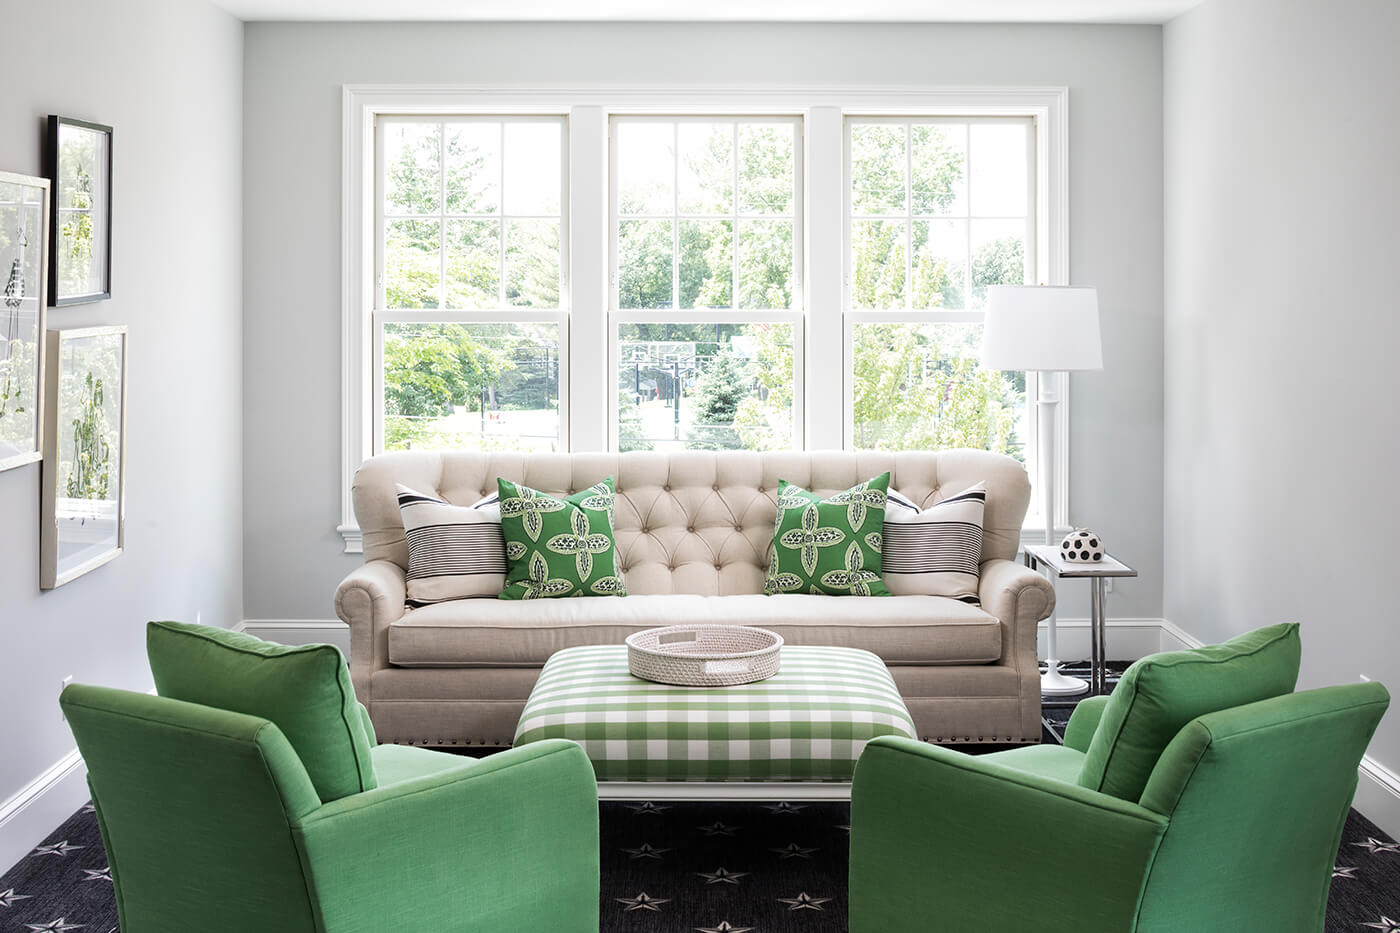 Sitting room with white Marvin windows.